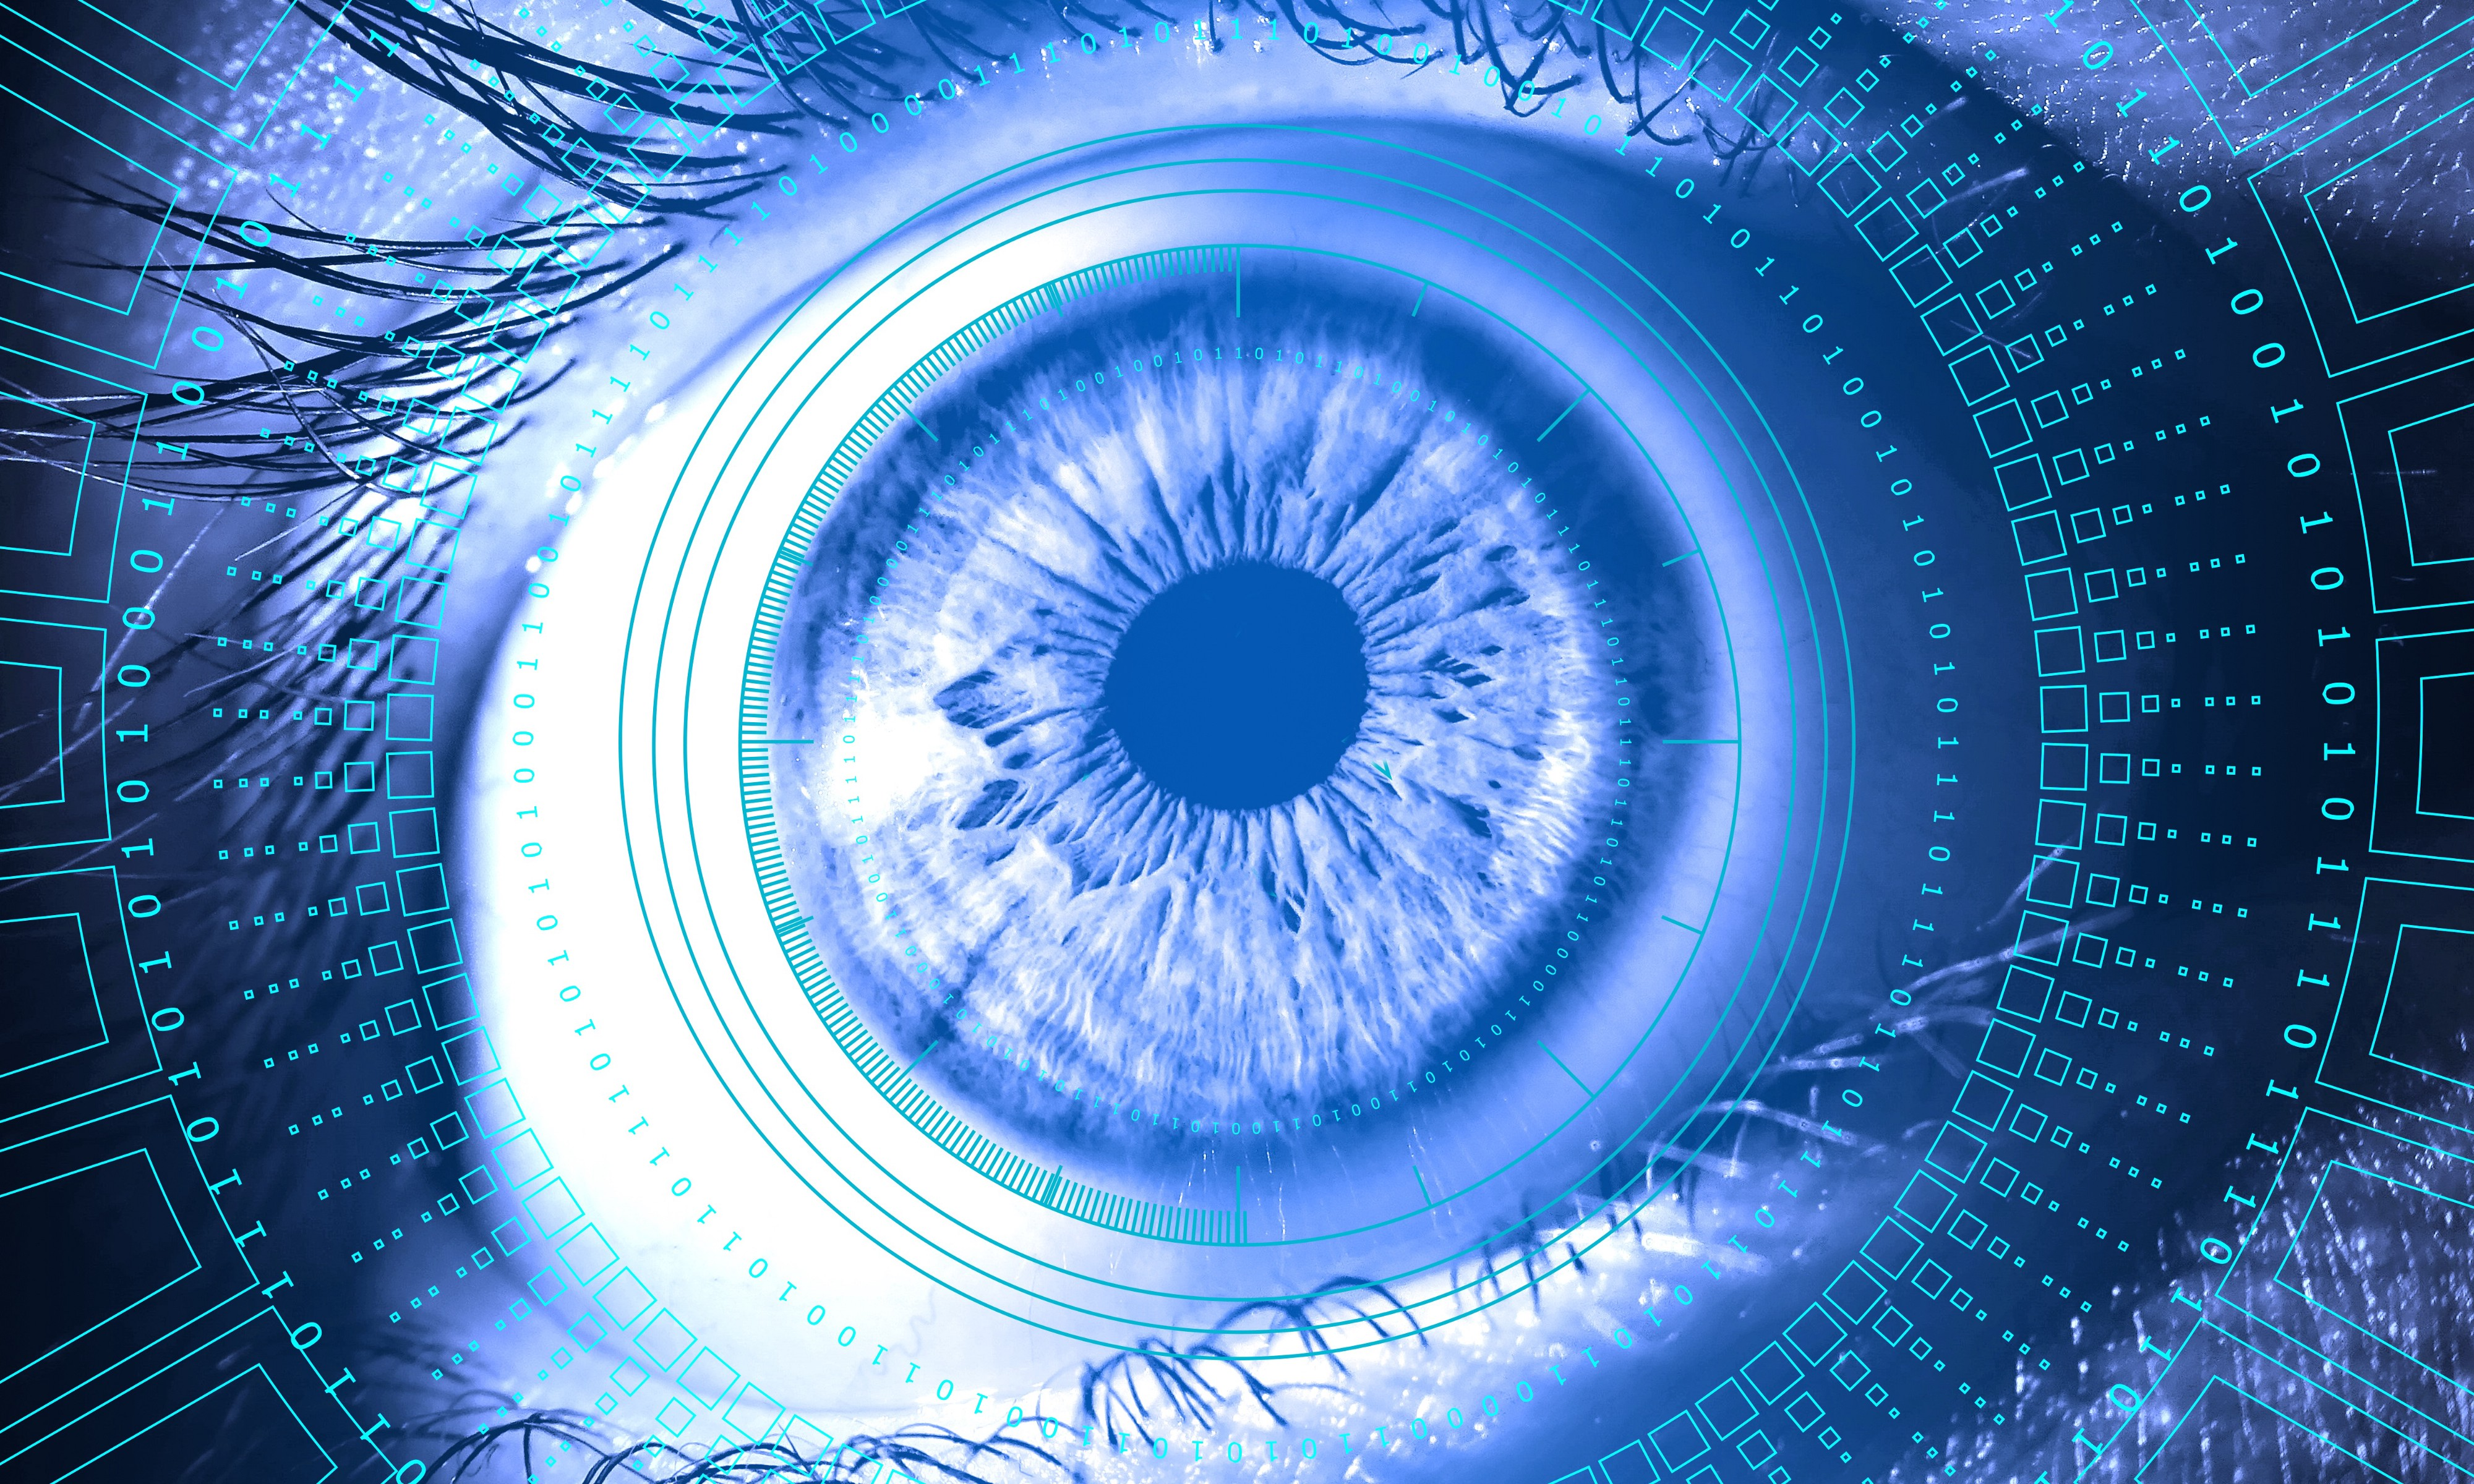 A closeup of a human eye in blue and white styled photography, with a digital contact lens display around it.